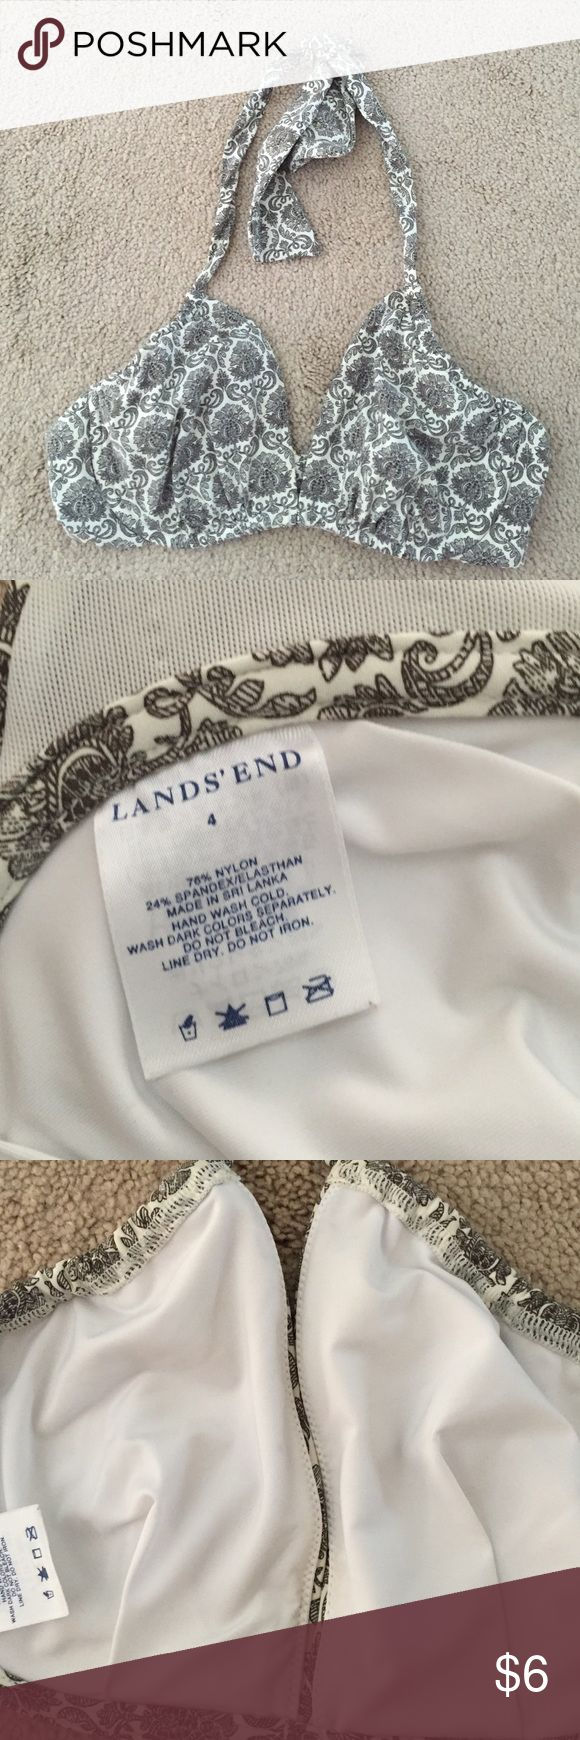 Lands End wired bikini top size 4 Lands End wired bikini top size 4 Lands' End Swim Bikinis